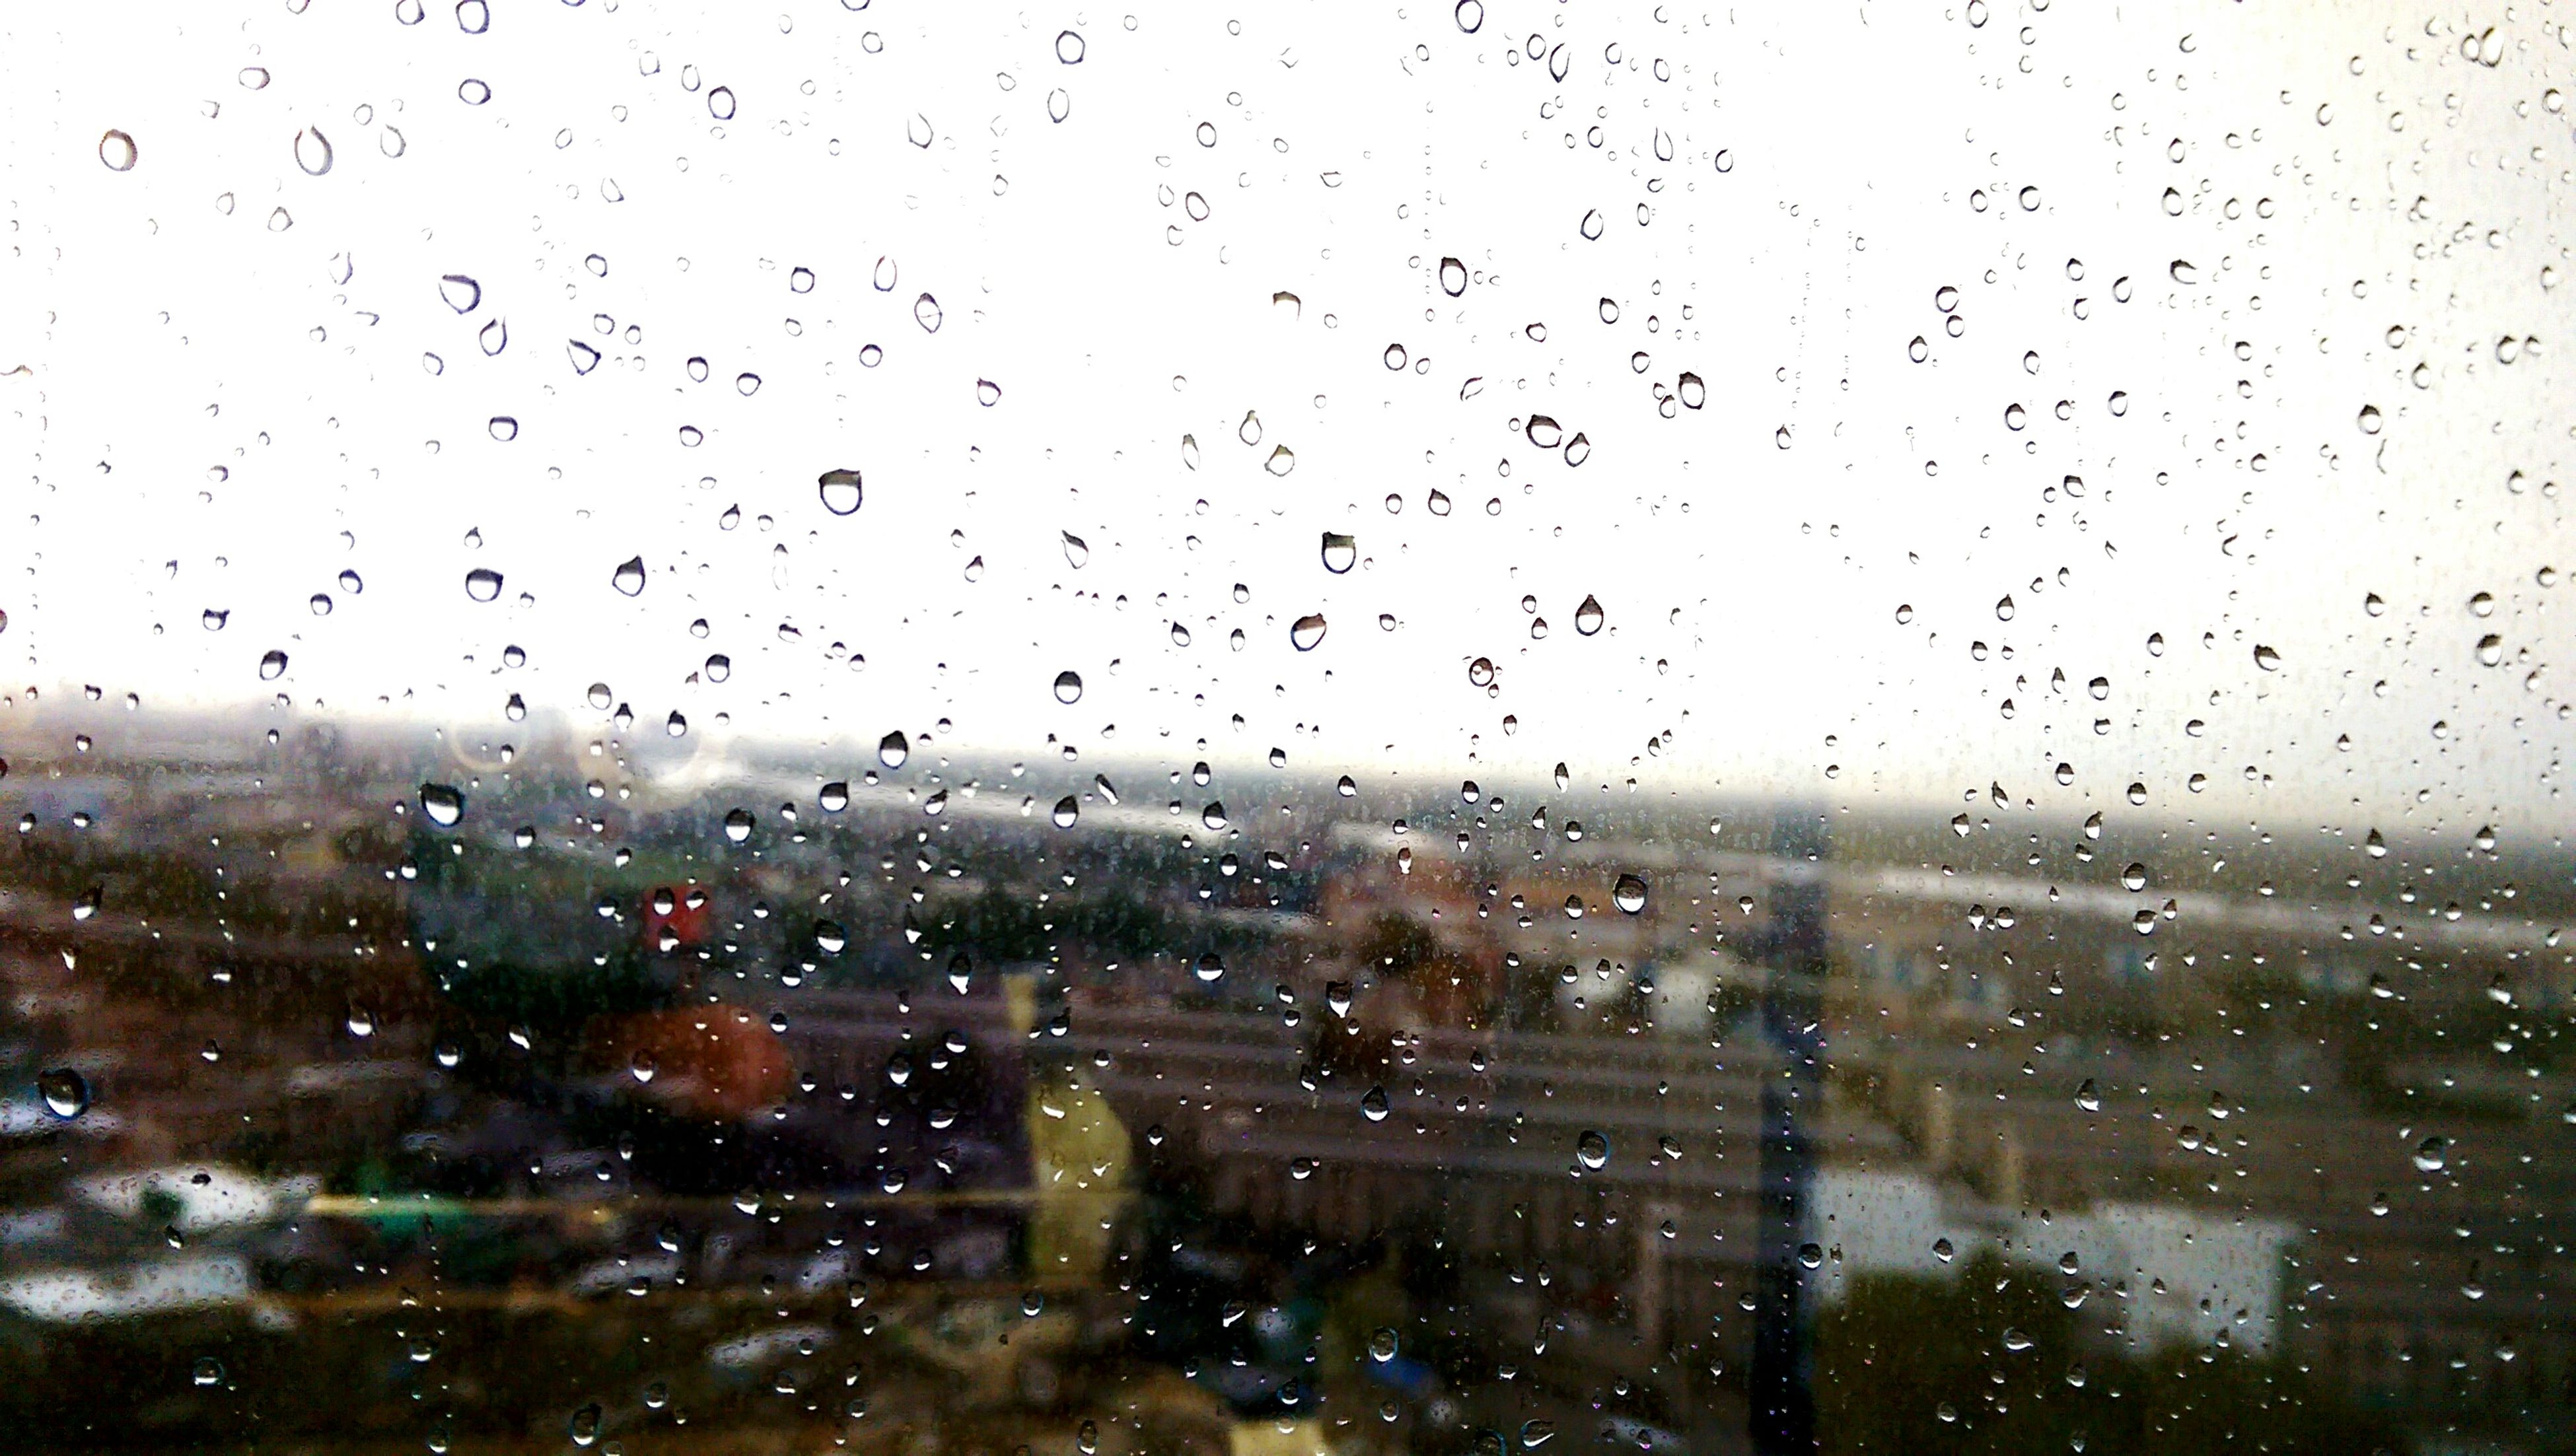 drop, wet, window, rain, indoors, weather, transparent, building exterior, architecture, built structure, city, water, cityscape, glass - material, raindrop, season, sky, focus on foreground, full frame, glass